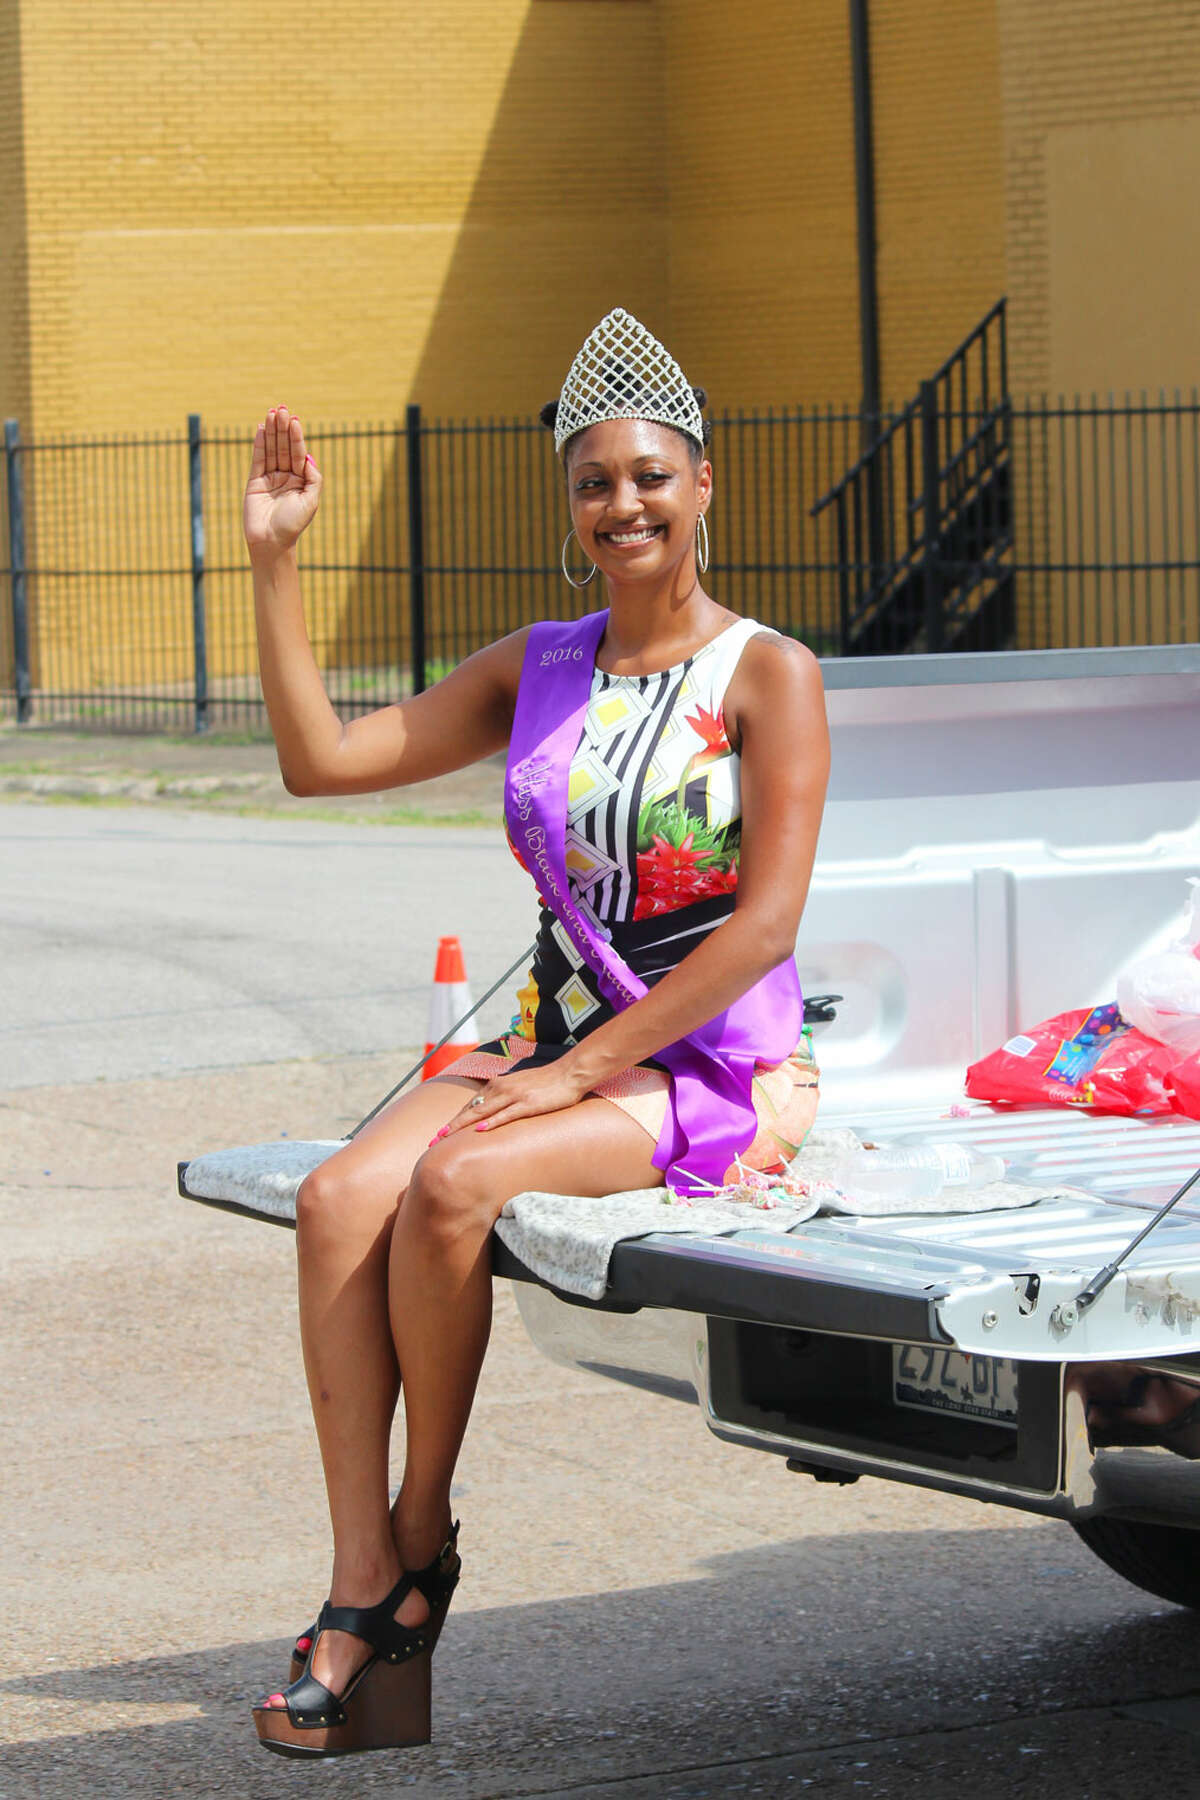 Scenes from the Juneteenth Festival and Parade on Saturday June 18, 2016.